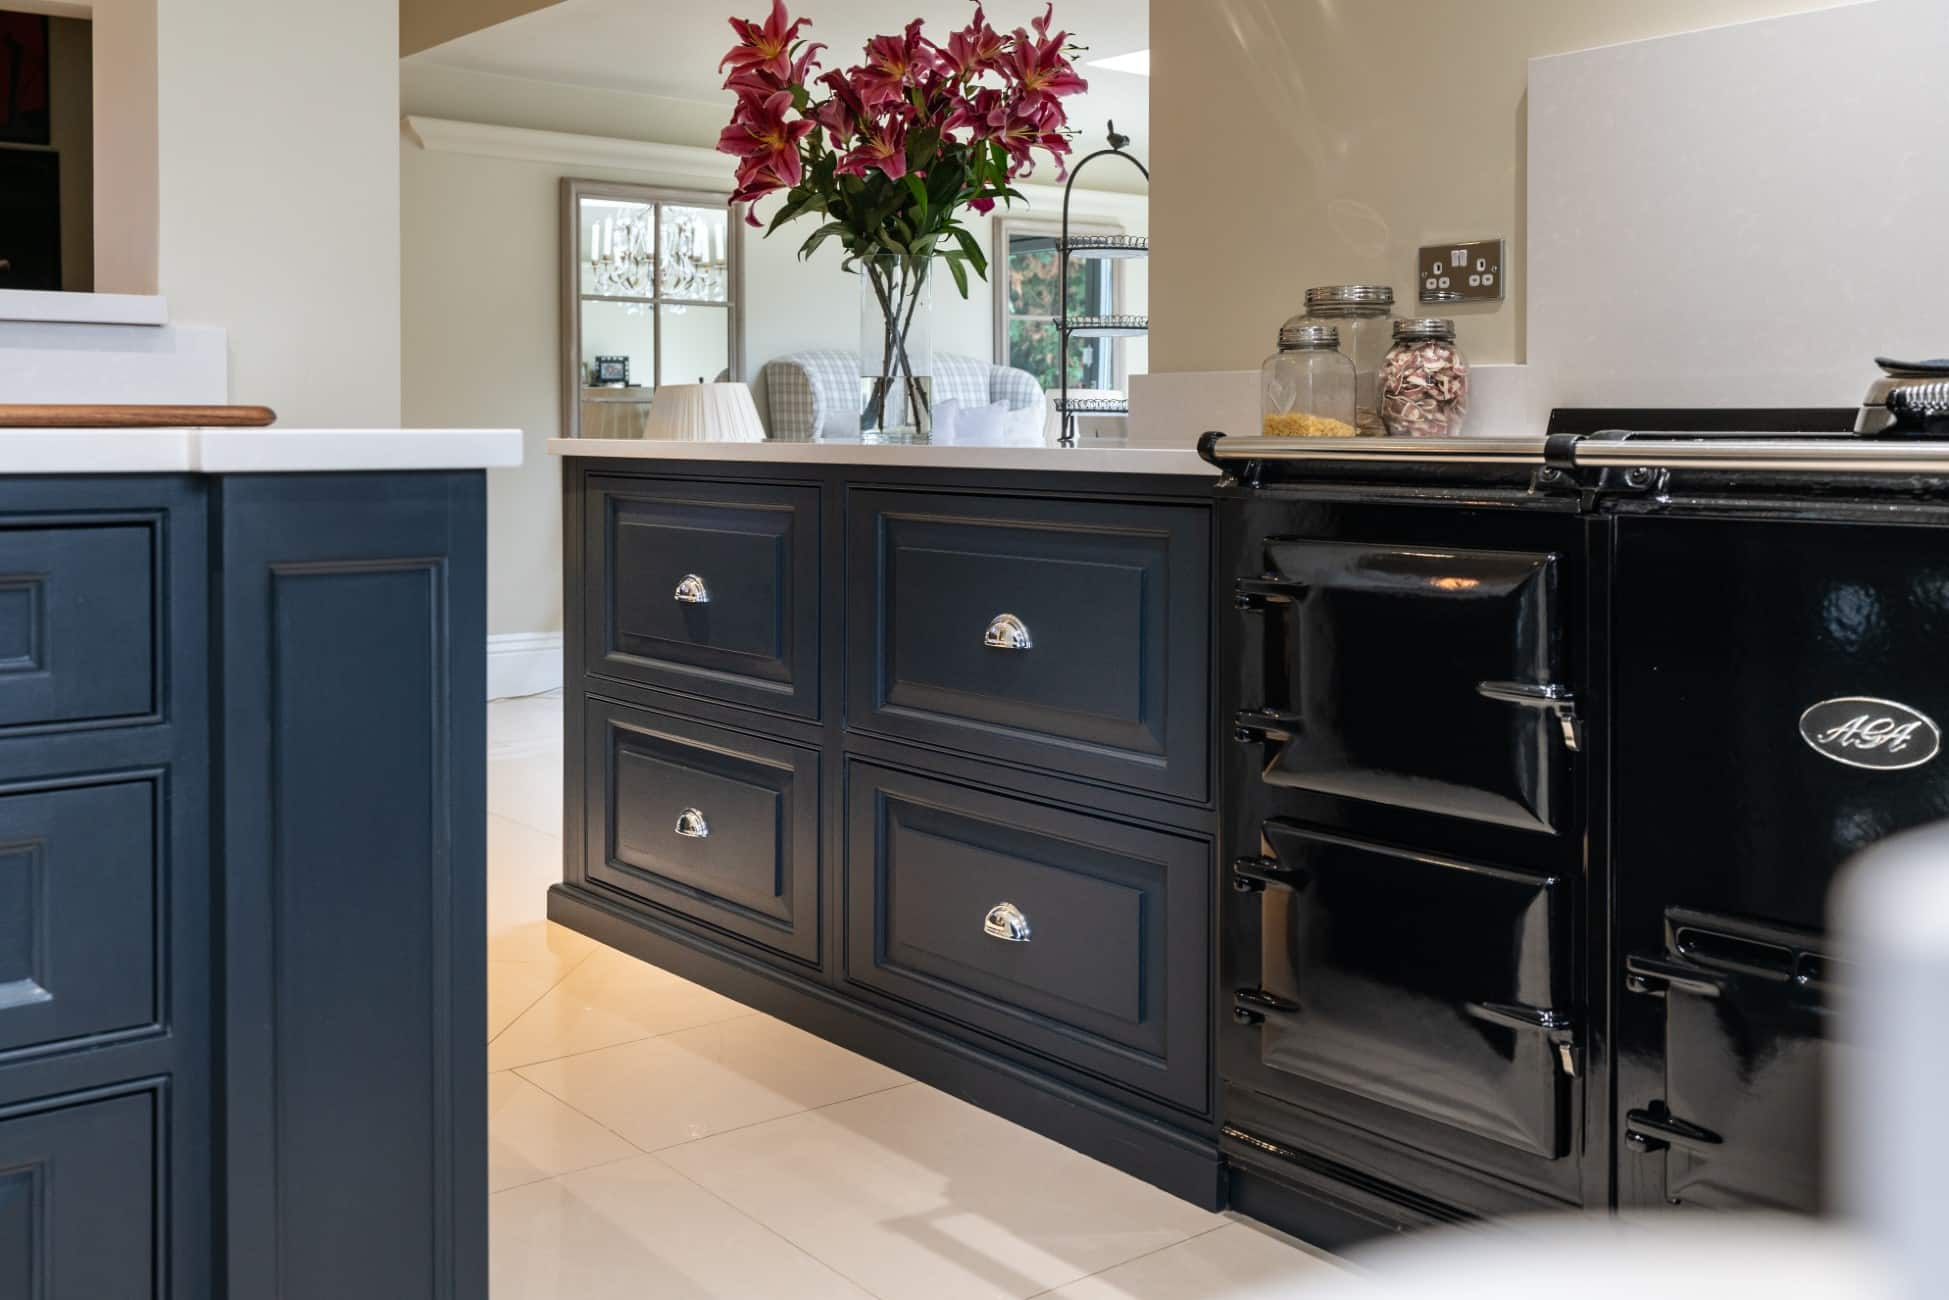 Farrow And Ball Railings Paint introducing black in the kitchen from farrow & ball